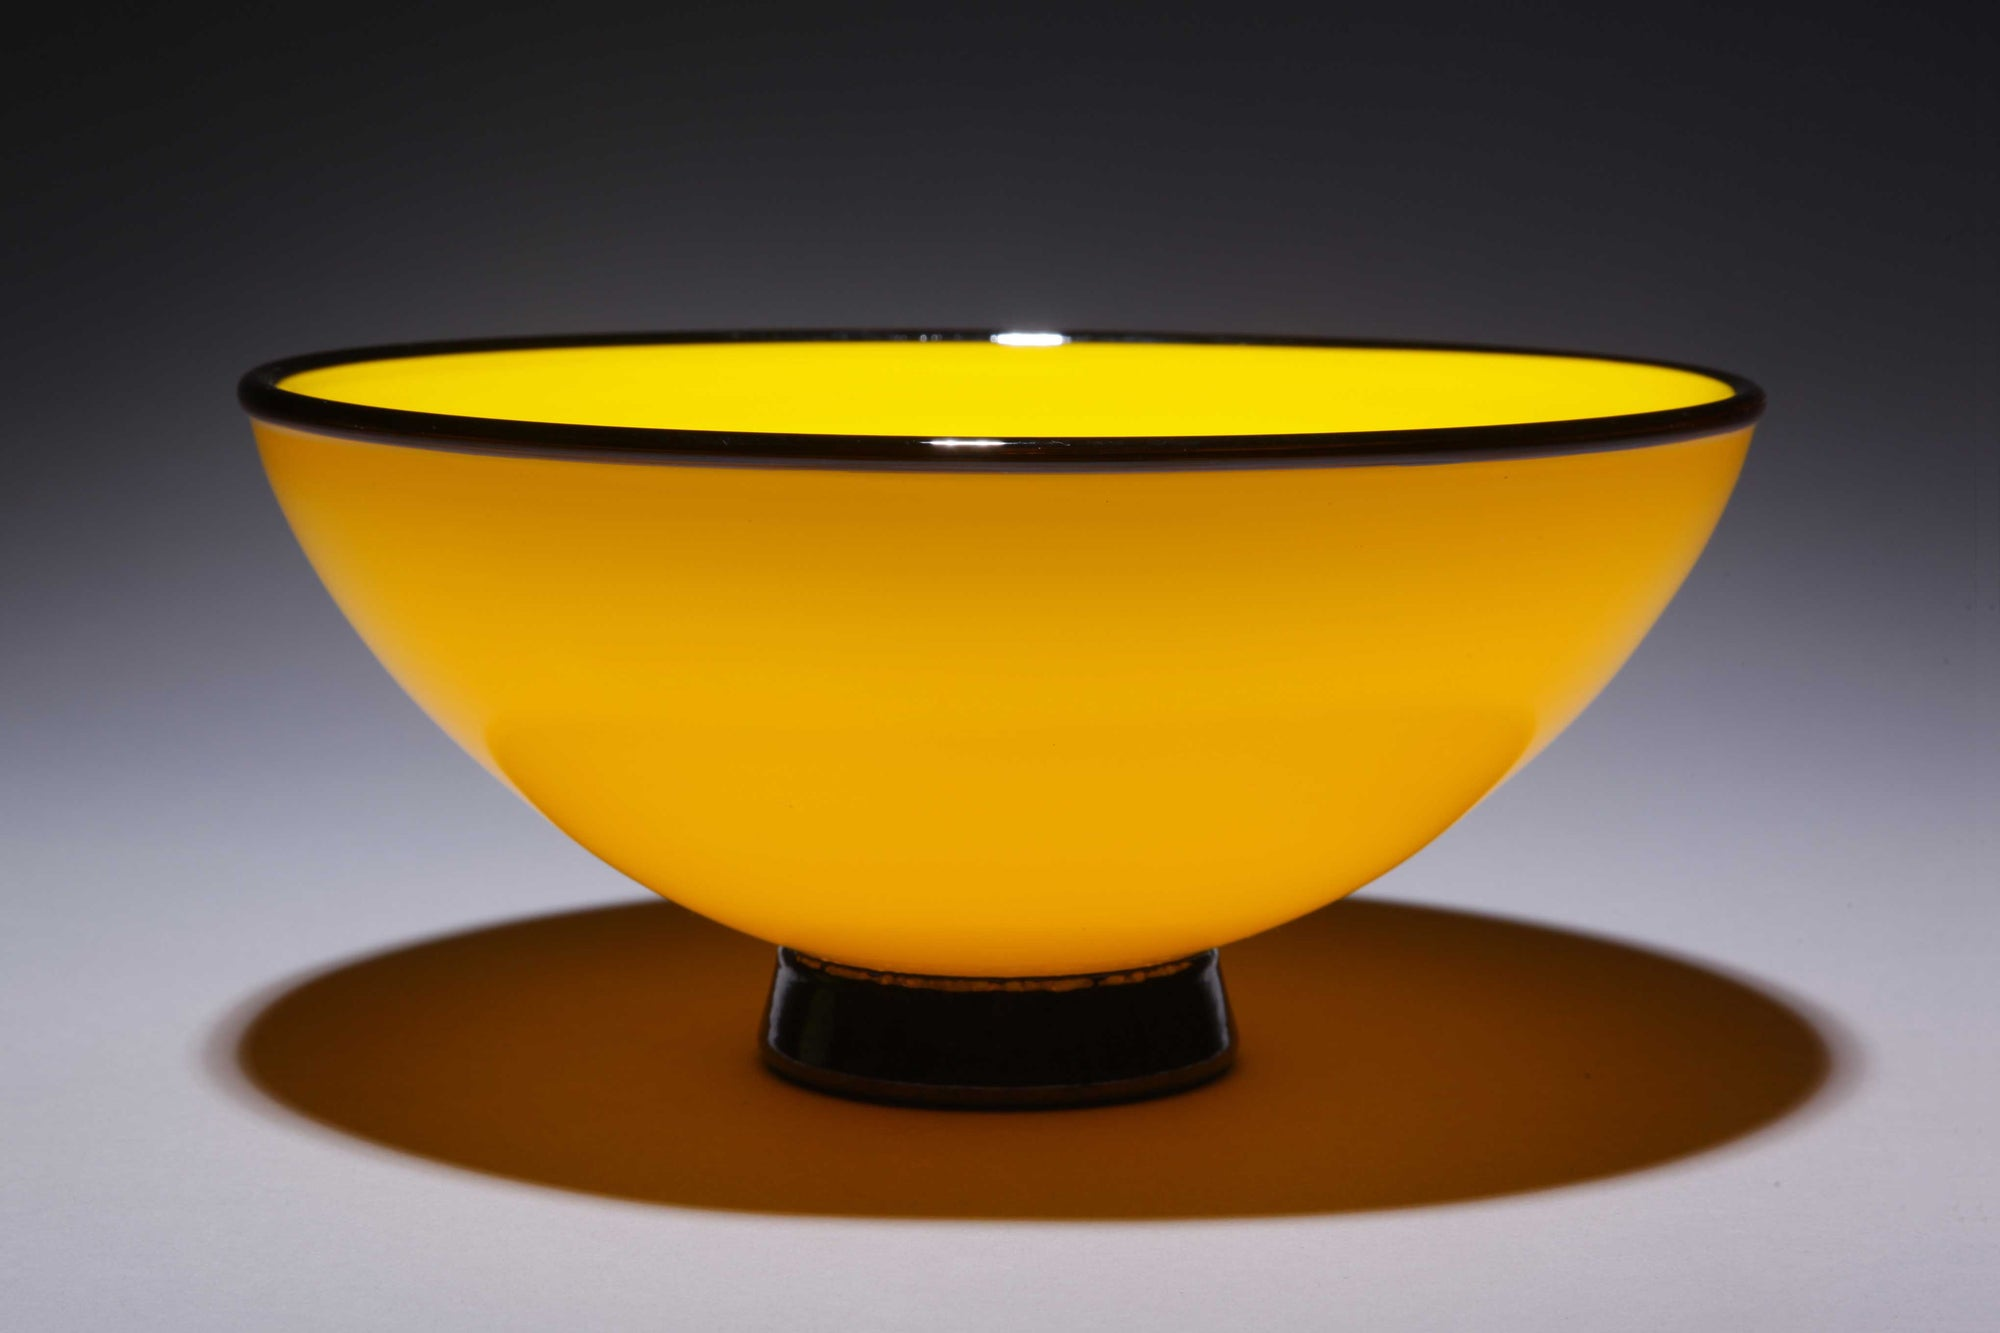 Bowl Opaque Golden Yellow w Black Rim Foot